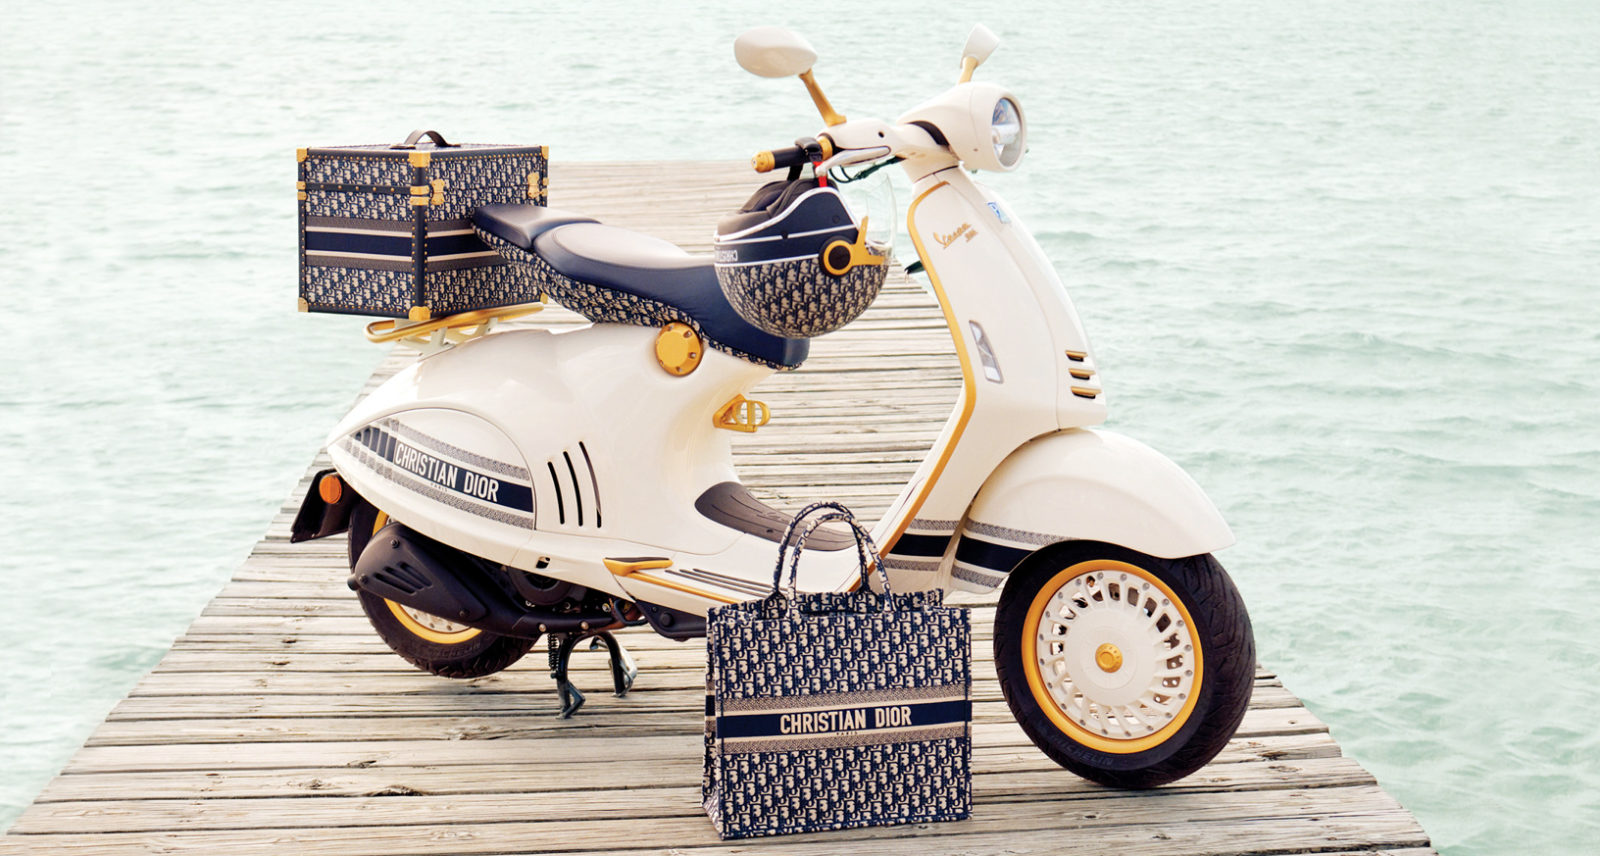 Dior and Vespa partner up for a limited-edition scooter